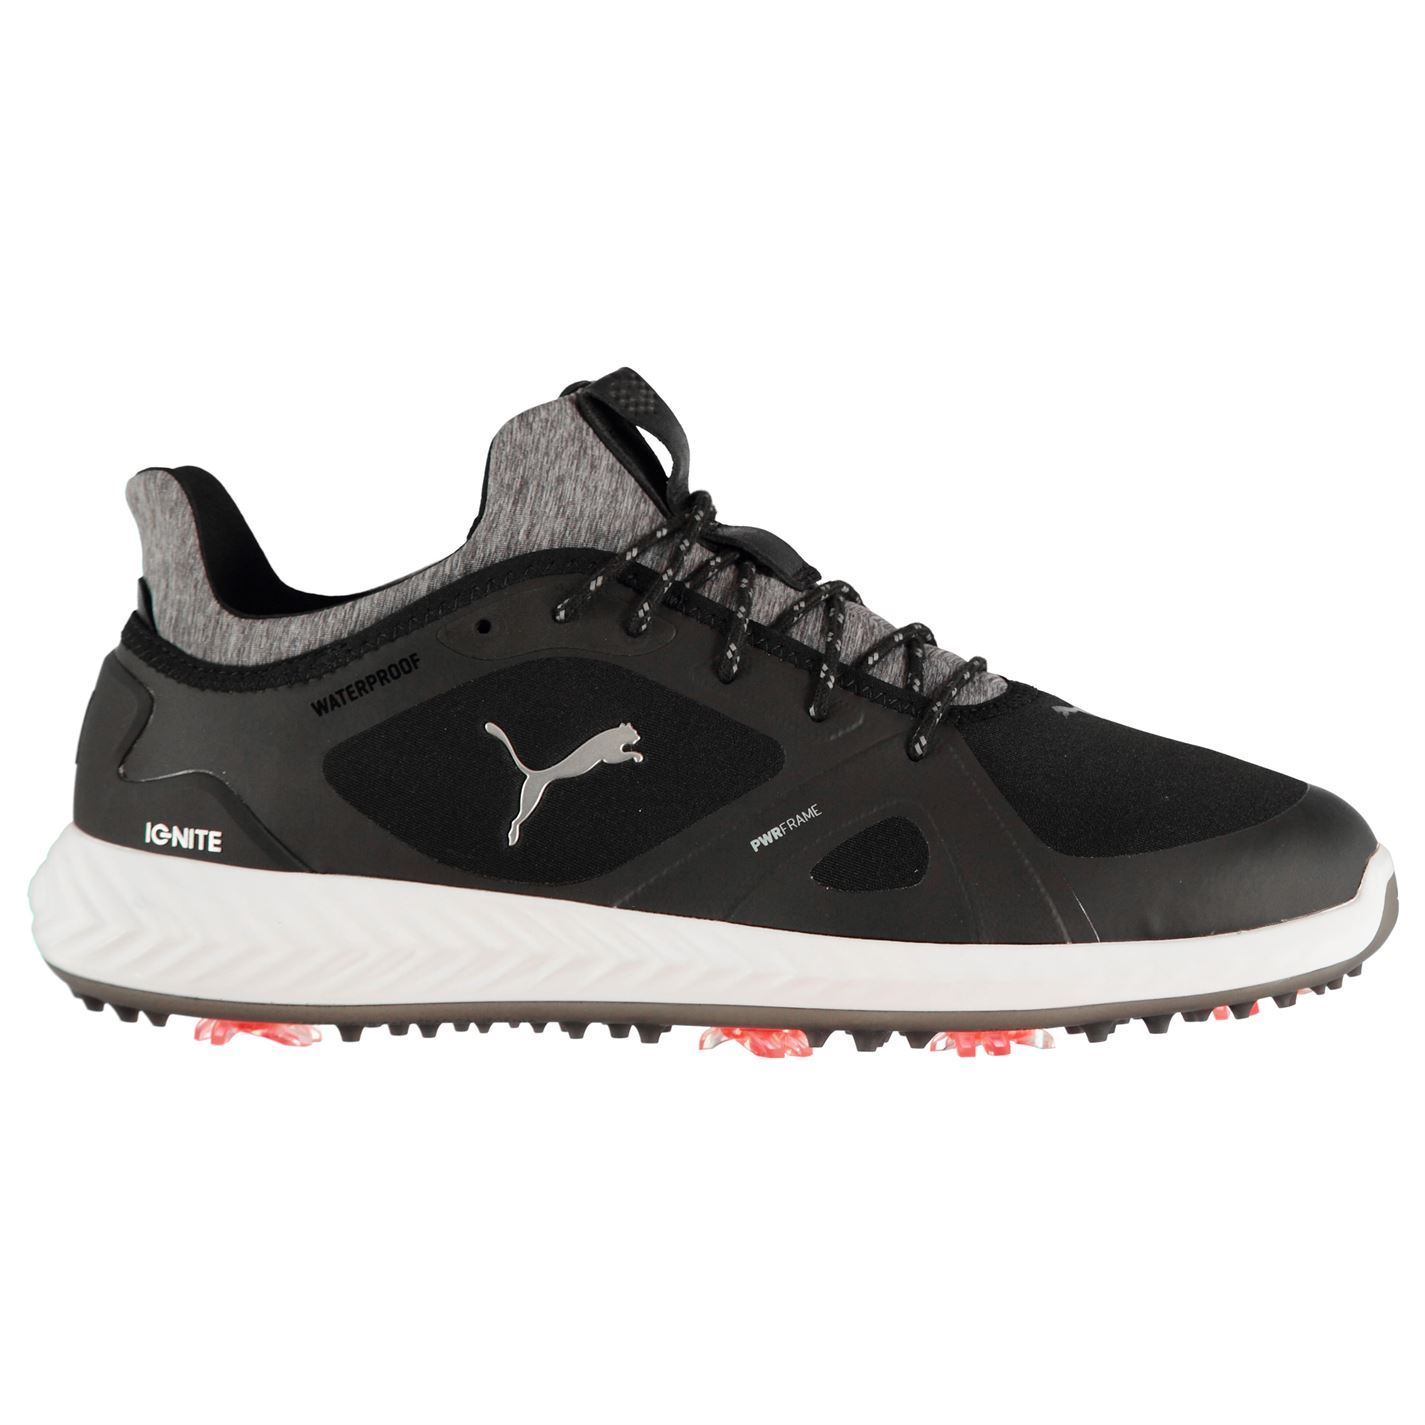 Puma Ignite PWR Adapt Spiked Golf Shoes Mens Black Spikes